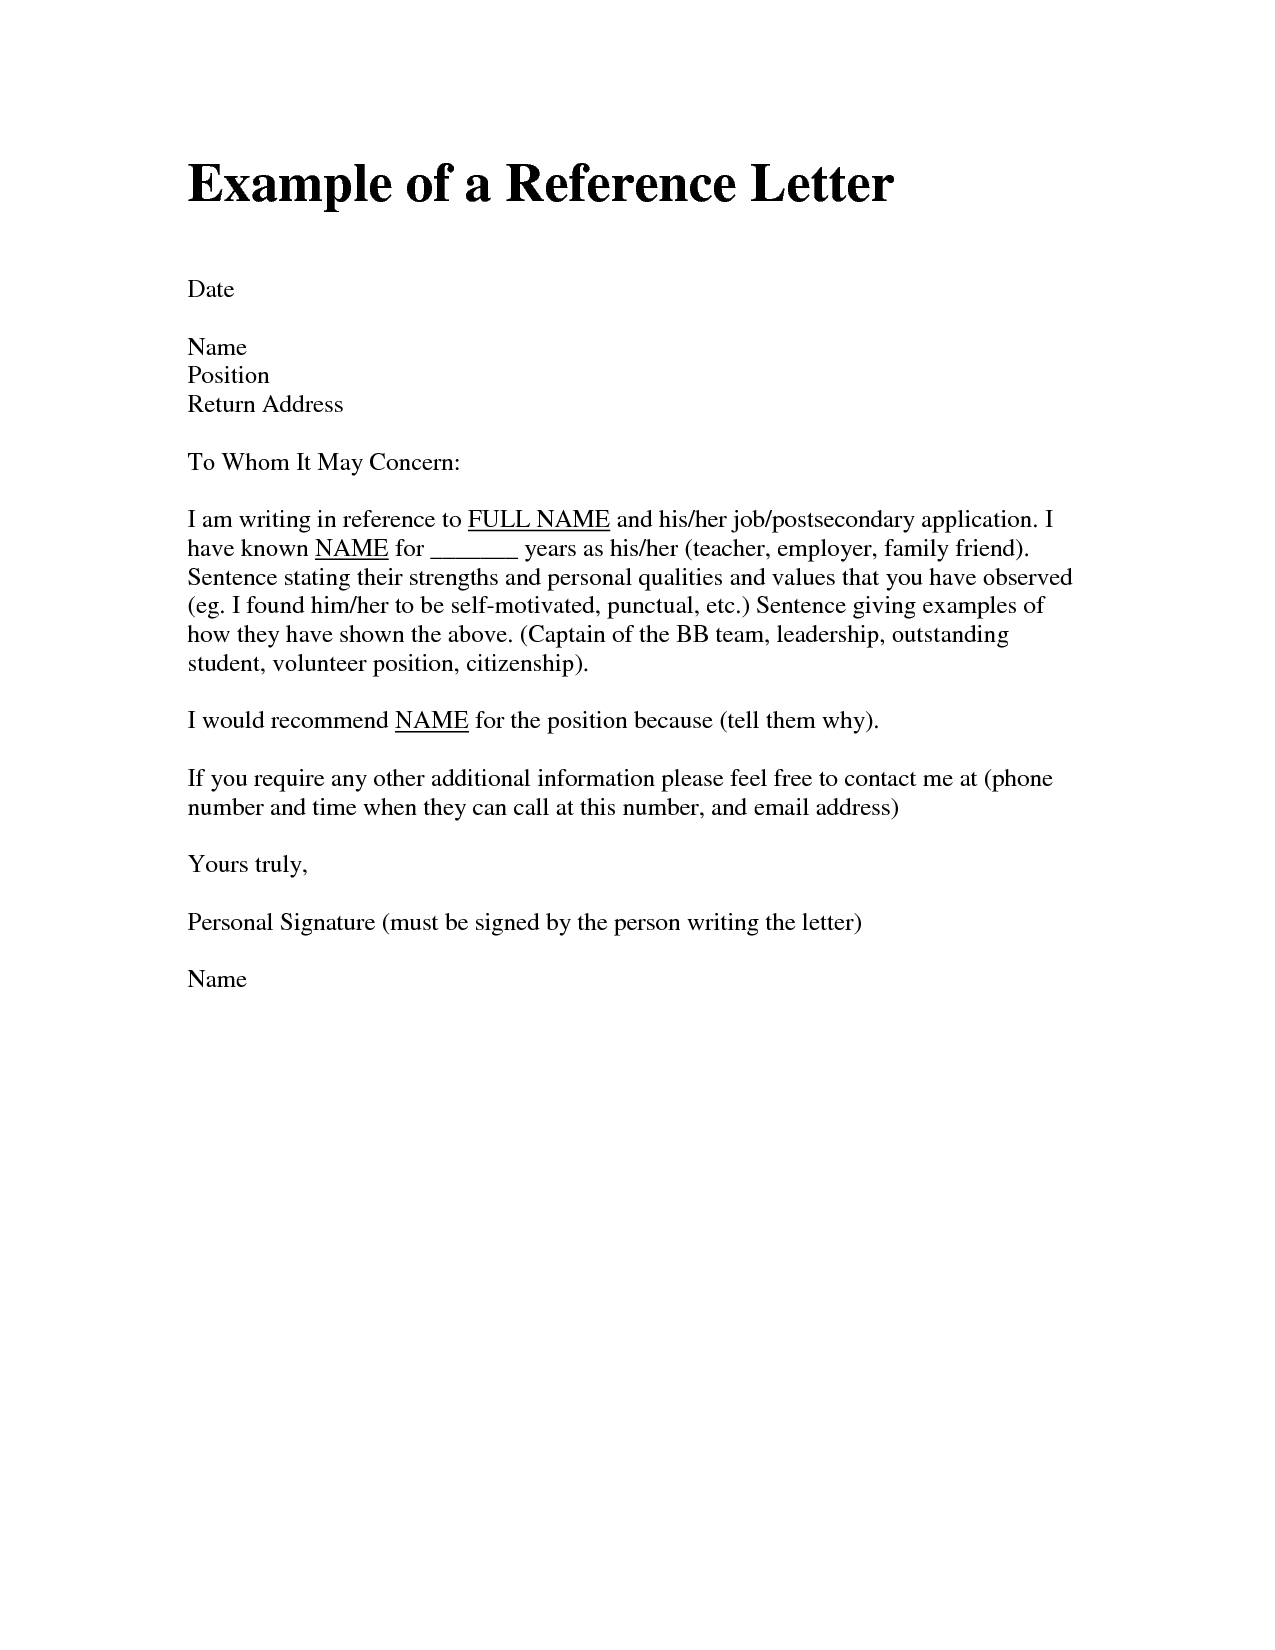 Letter Of Recommendation for Yourself Template - Letter Re Mendation Template for Friend Art Lonwput Reference